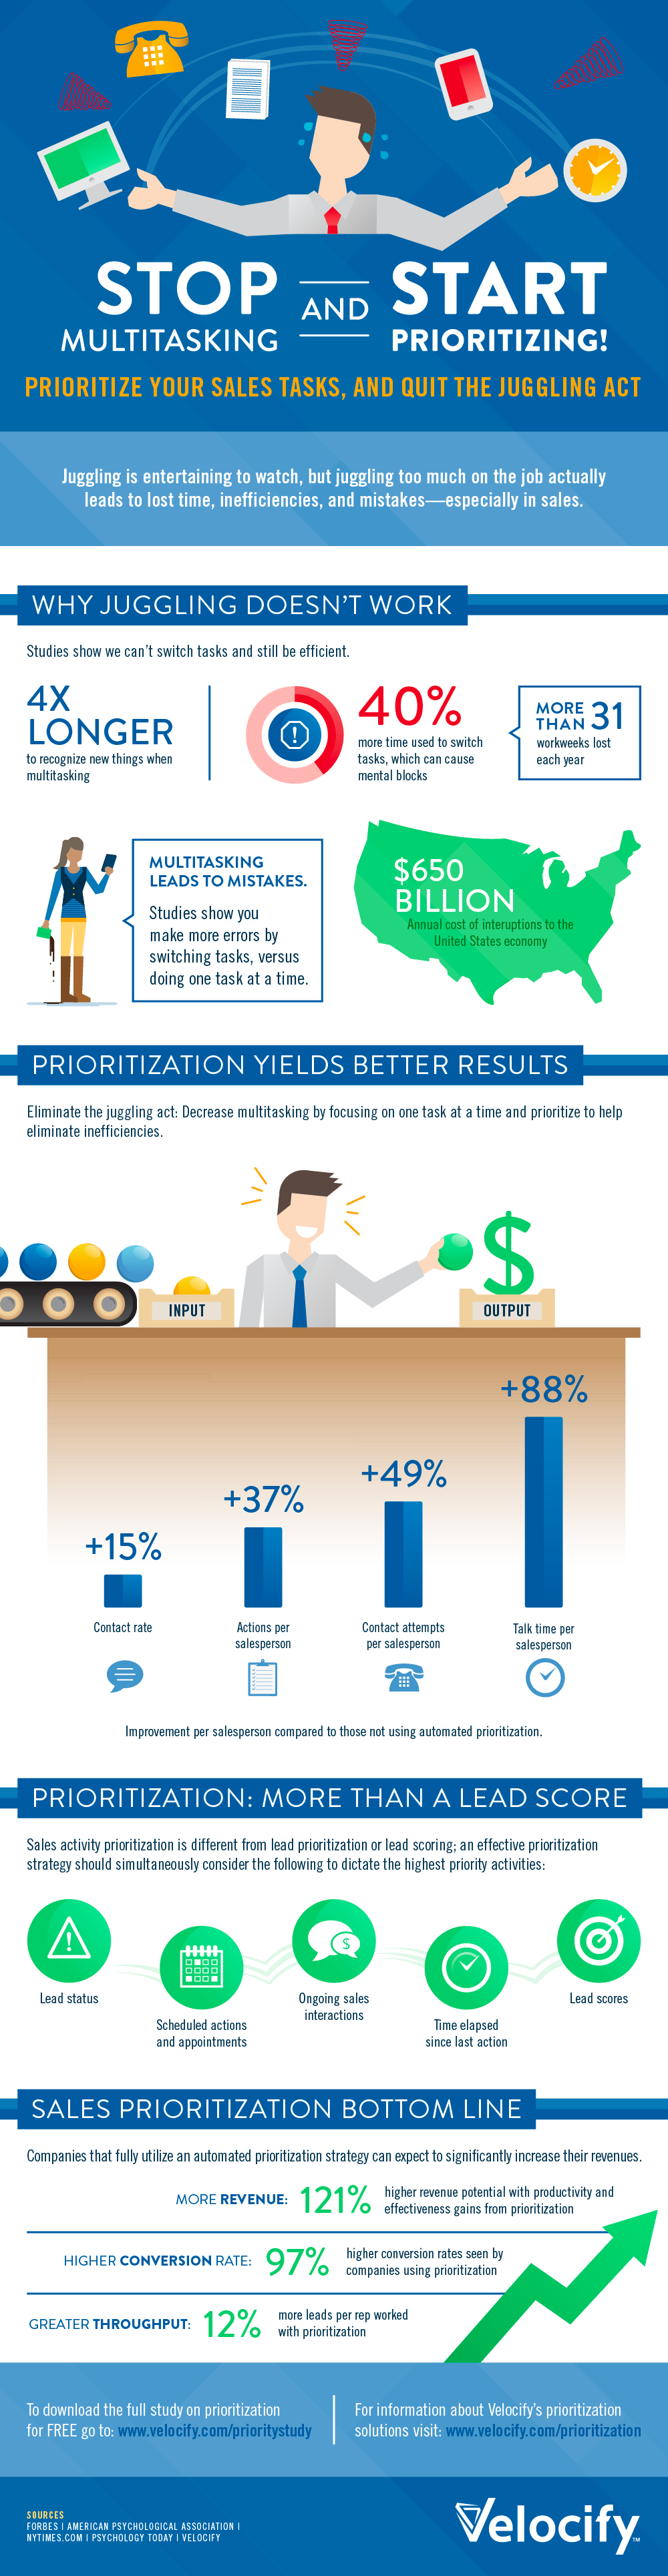 [Infographic] Increase Sales Performance by Eliminating Multitasking